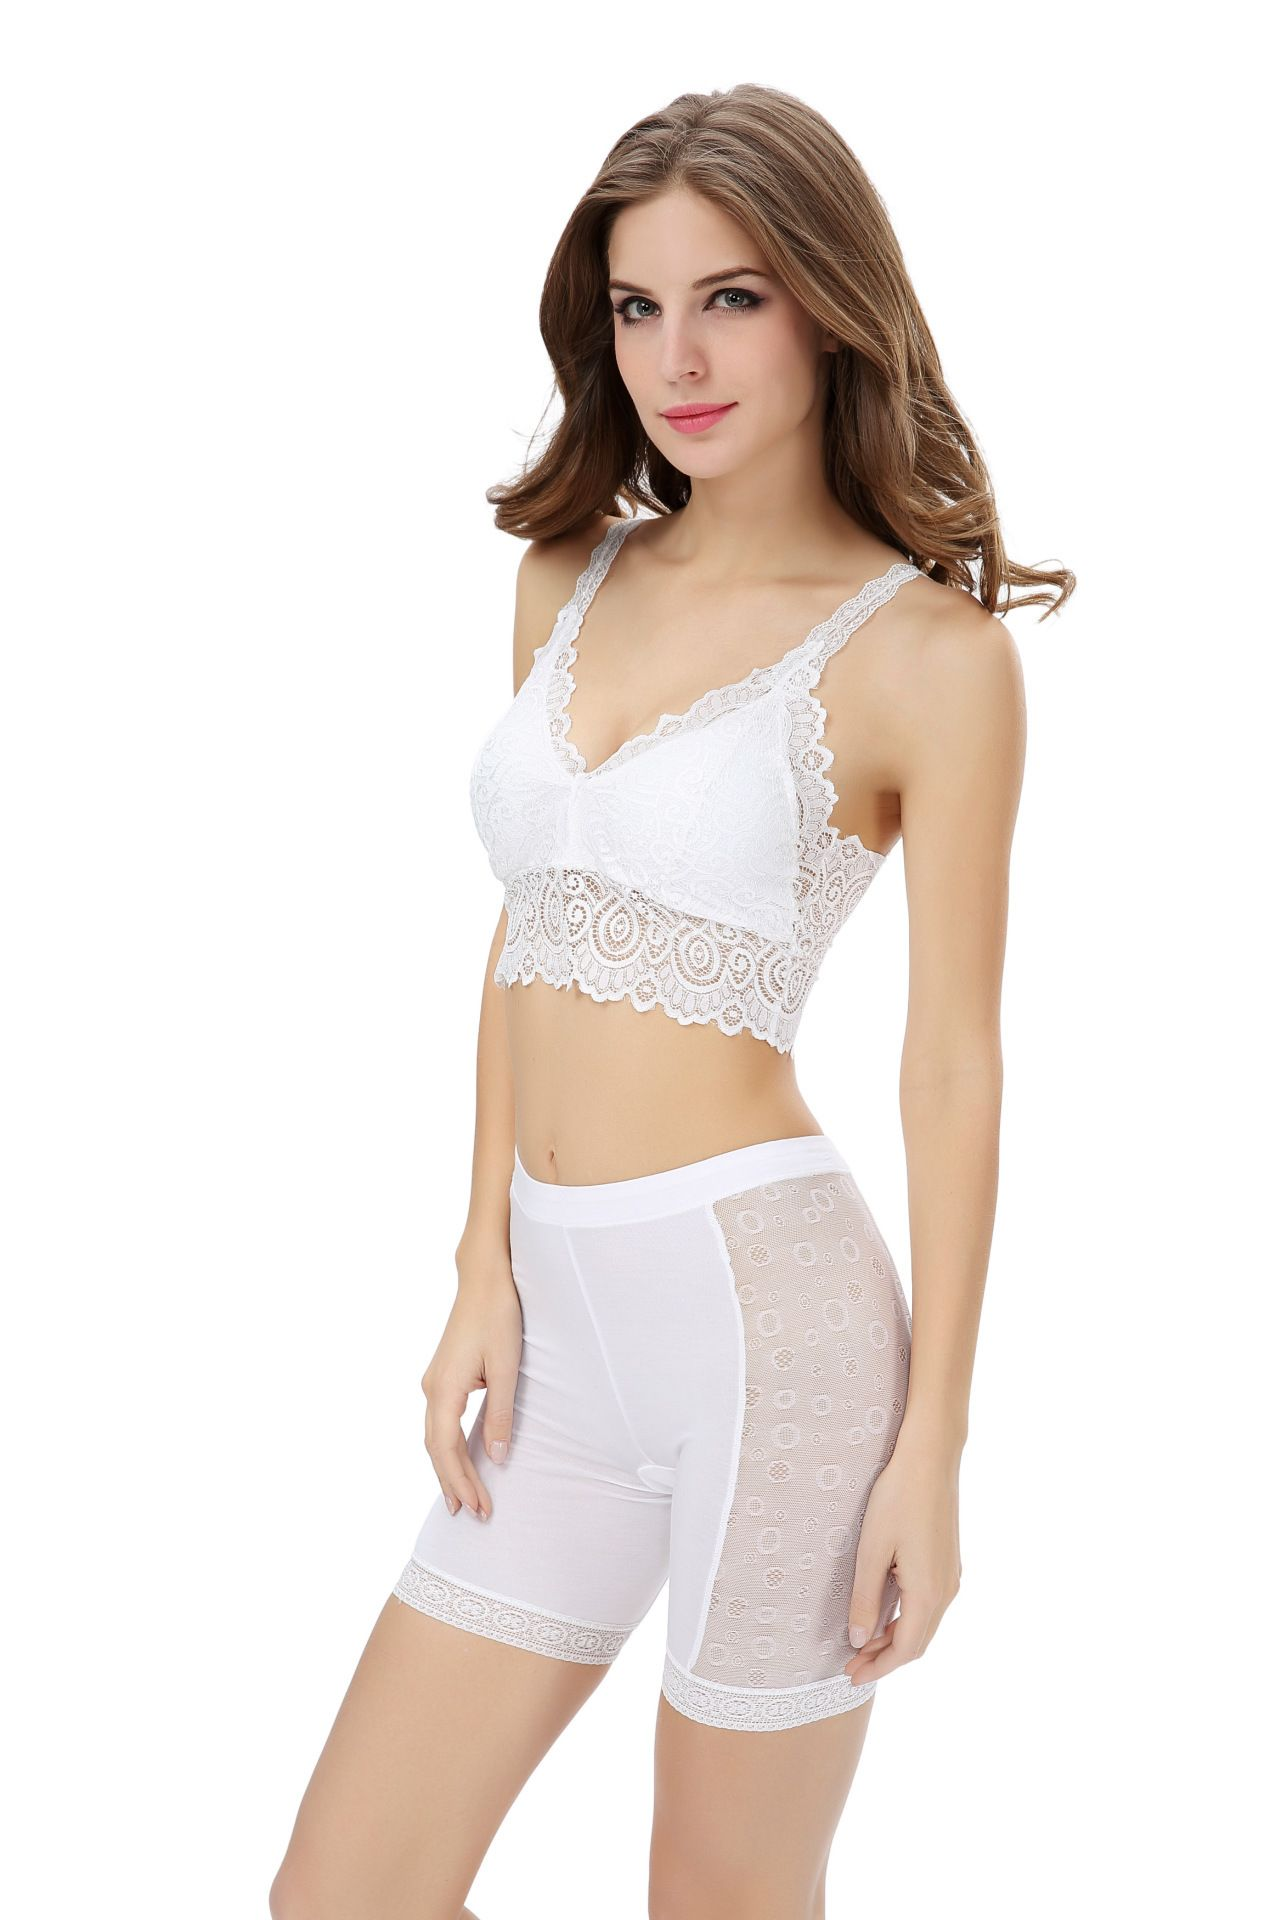 5b692226d7a Sexy V Lace Camisoles white tube top underwear for tutus